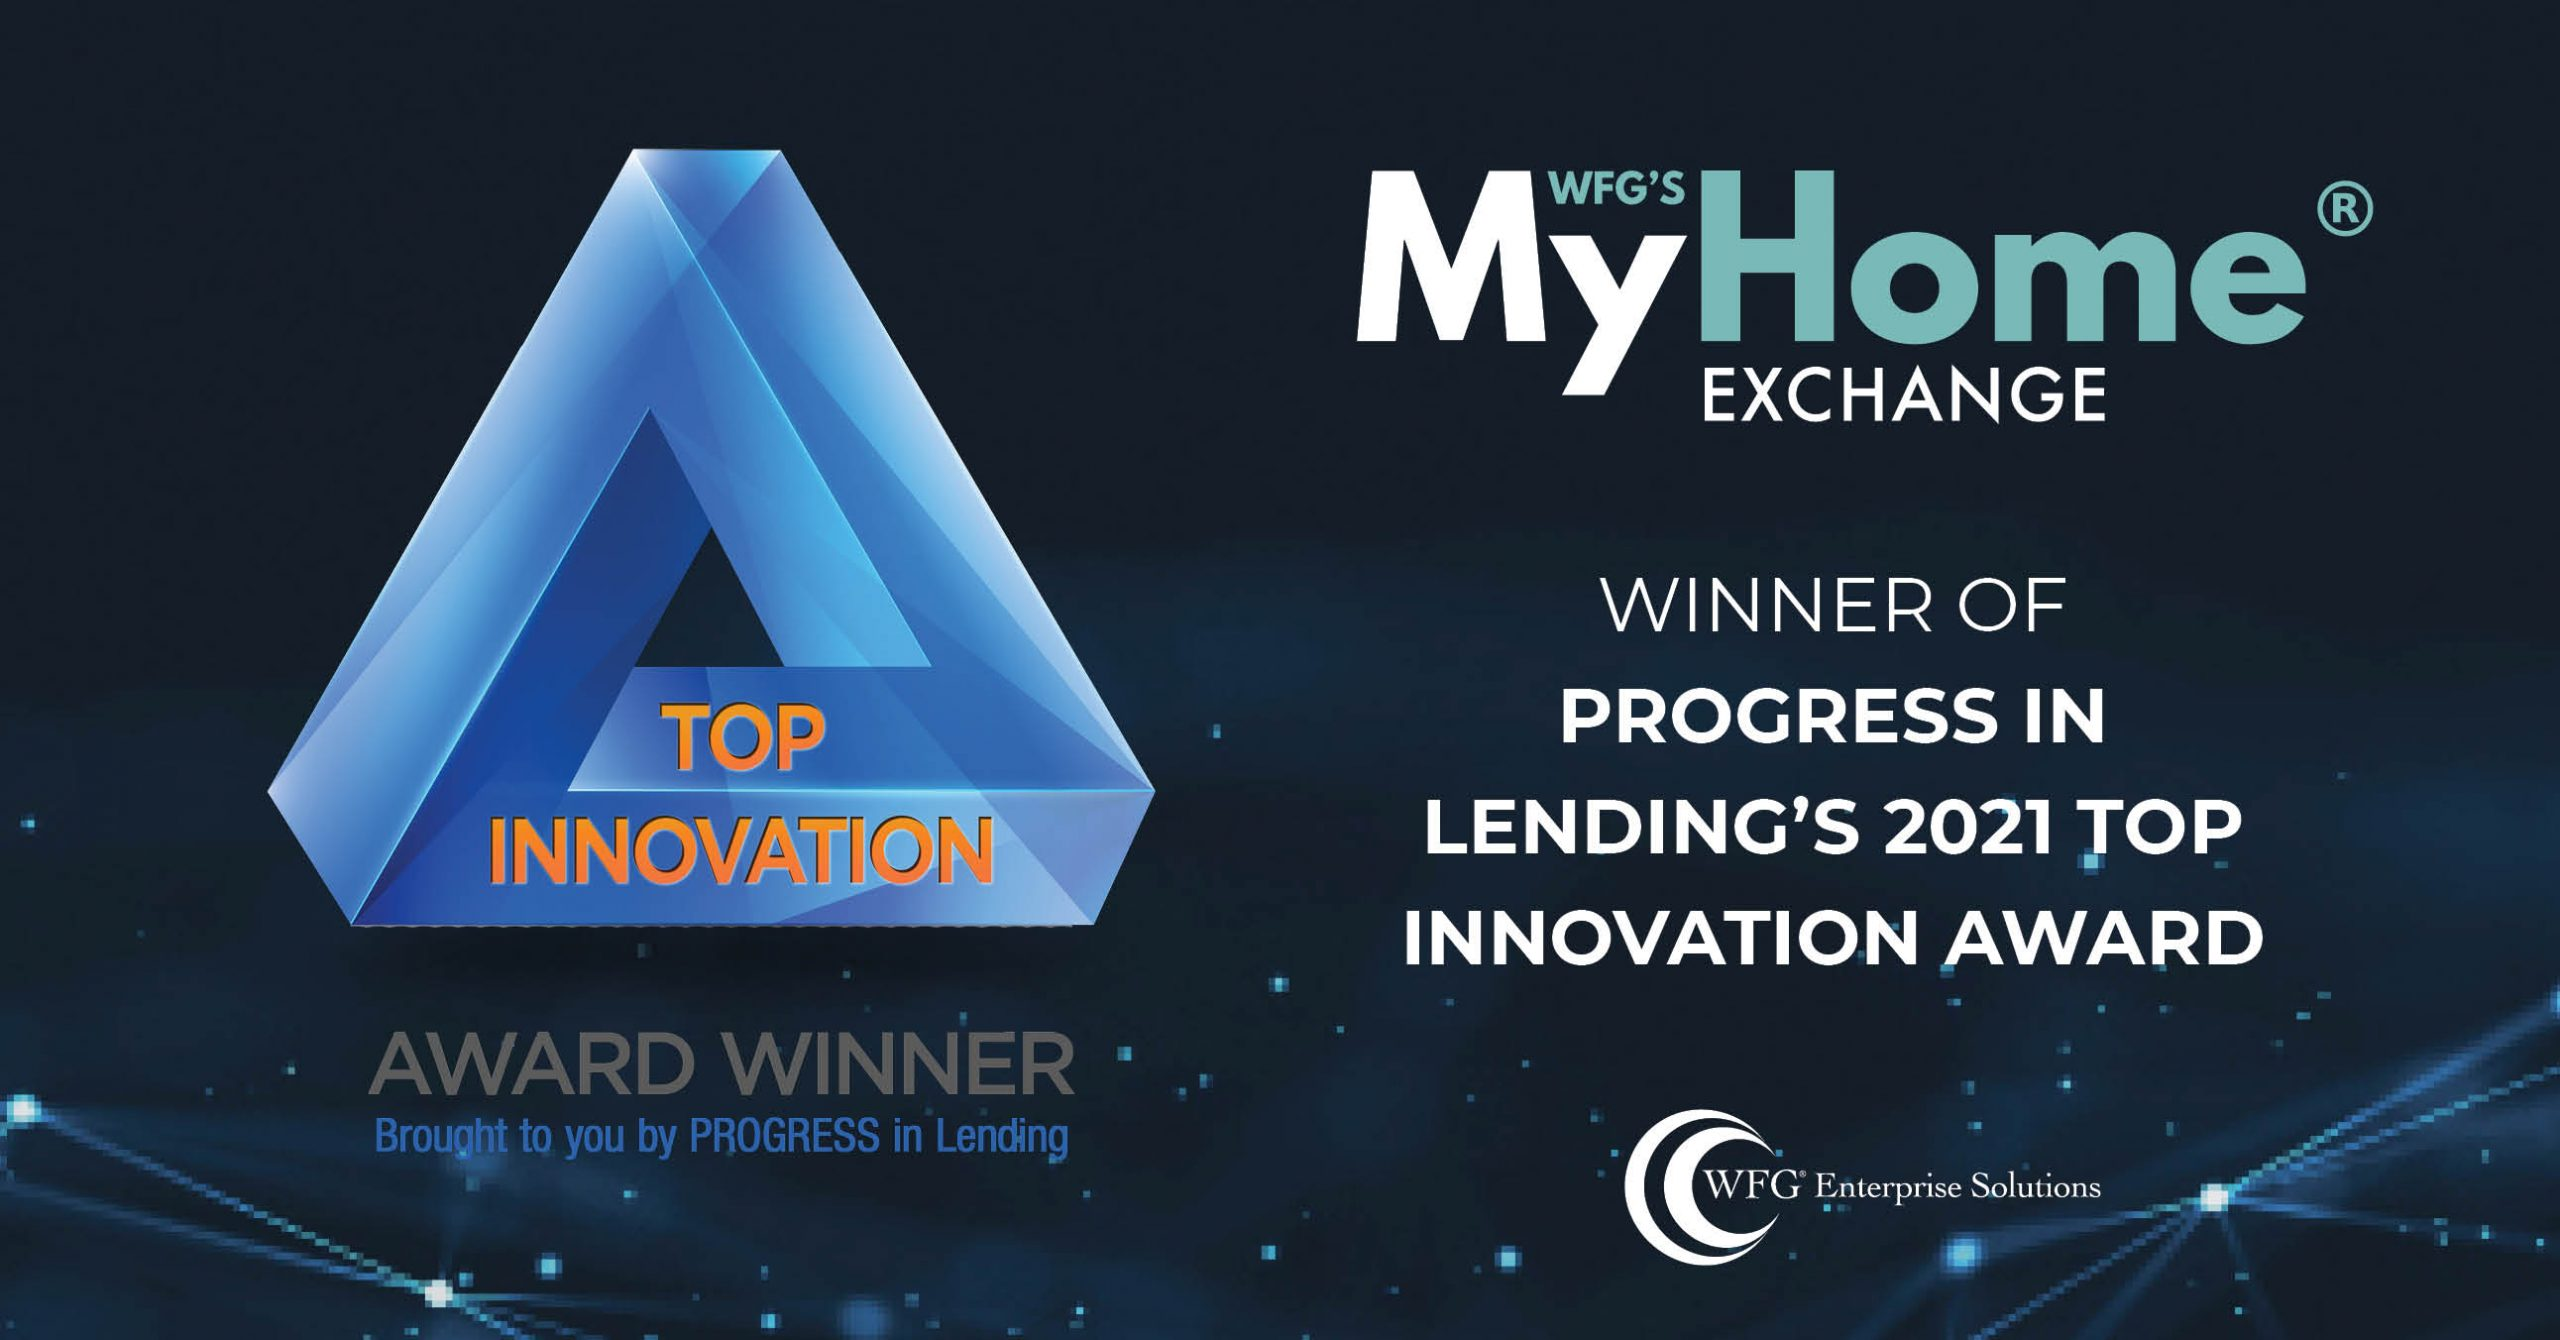 MyHome Exchange Wins Progress-in-Lending's 'Innovations Award'